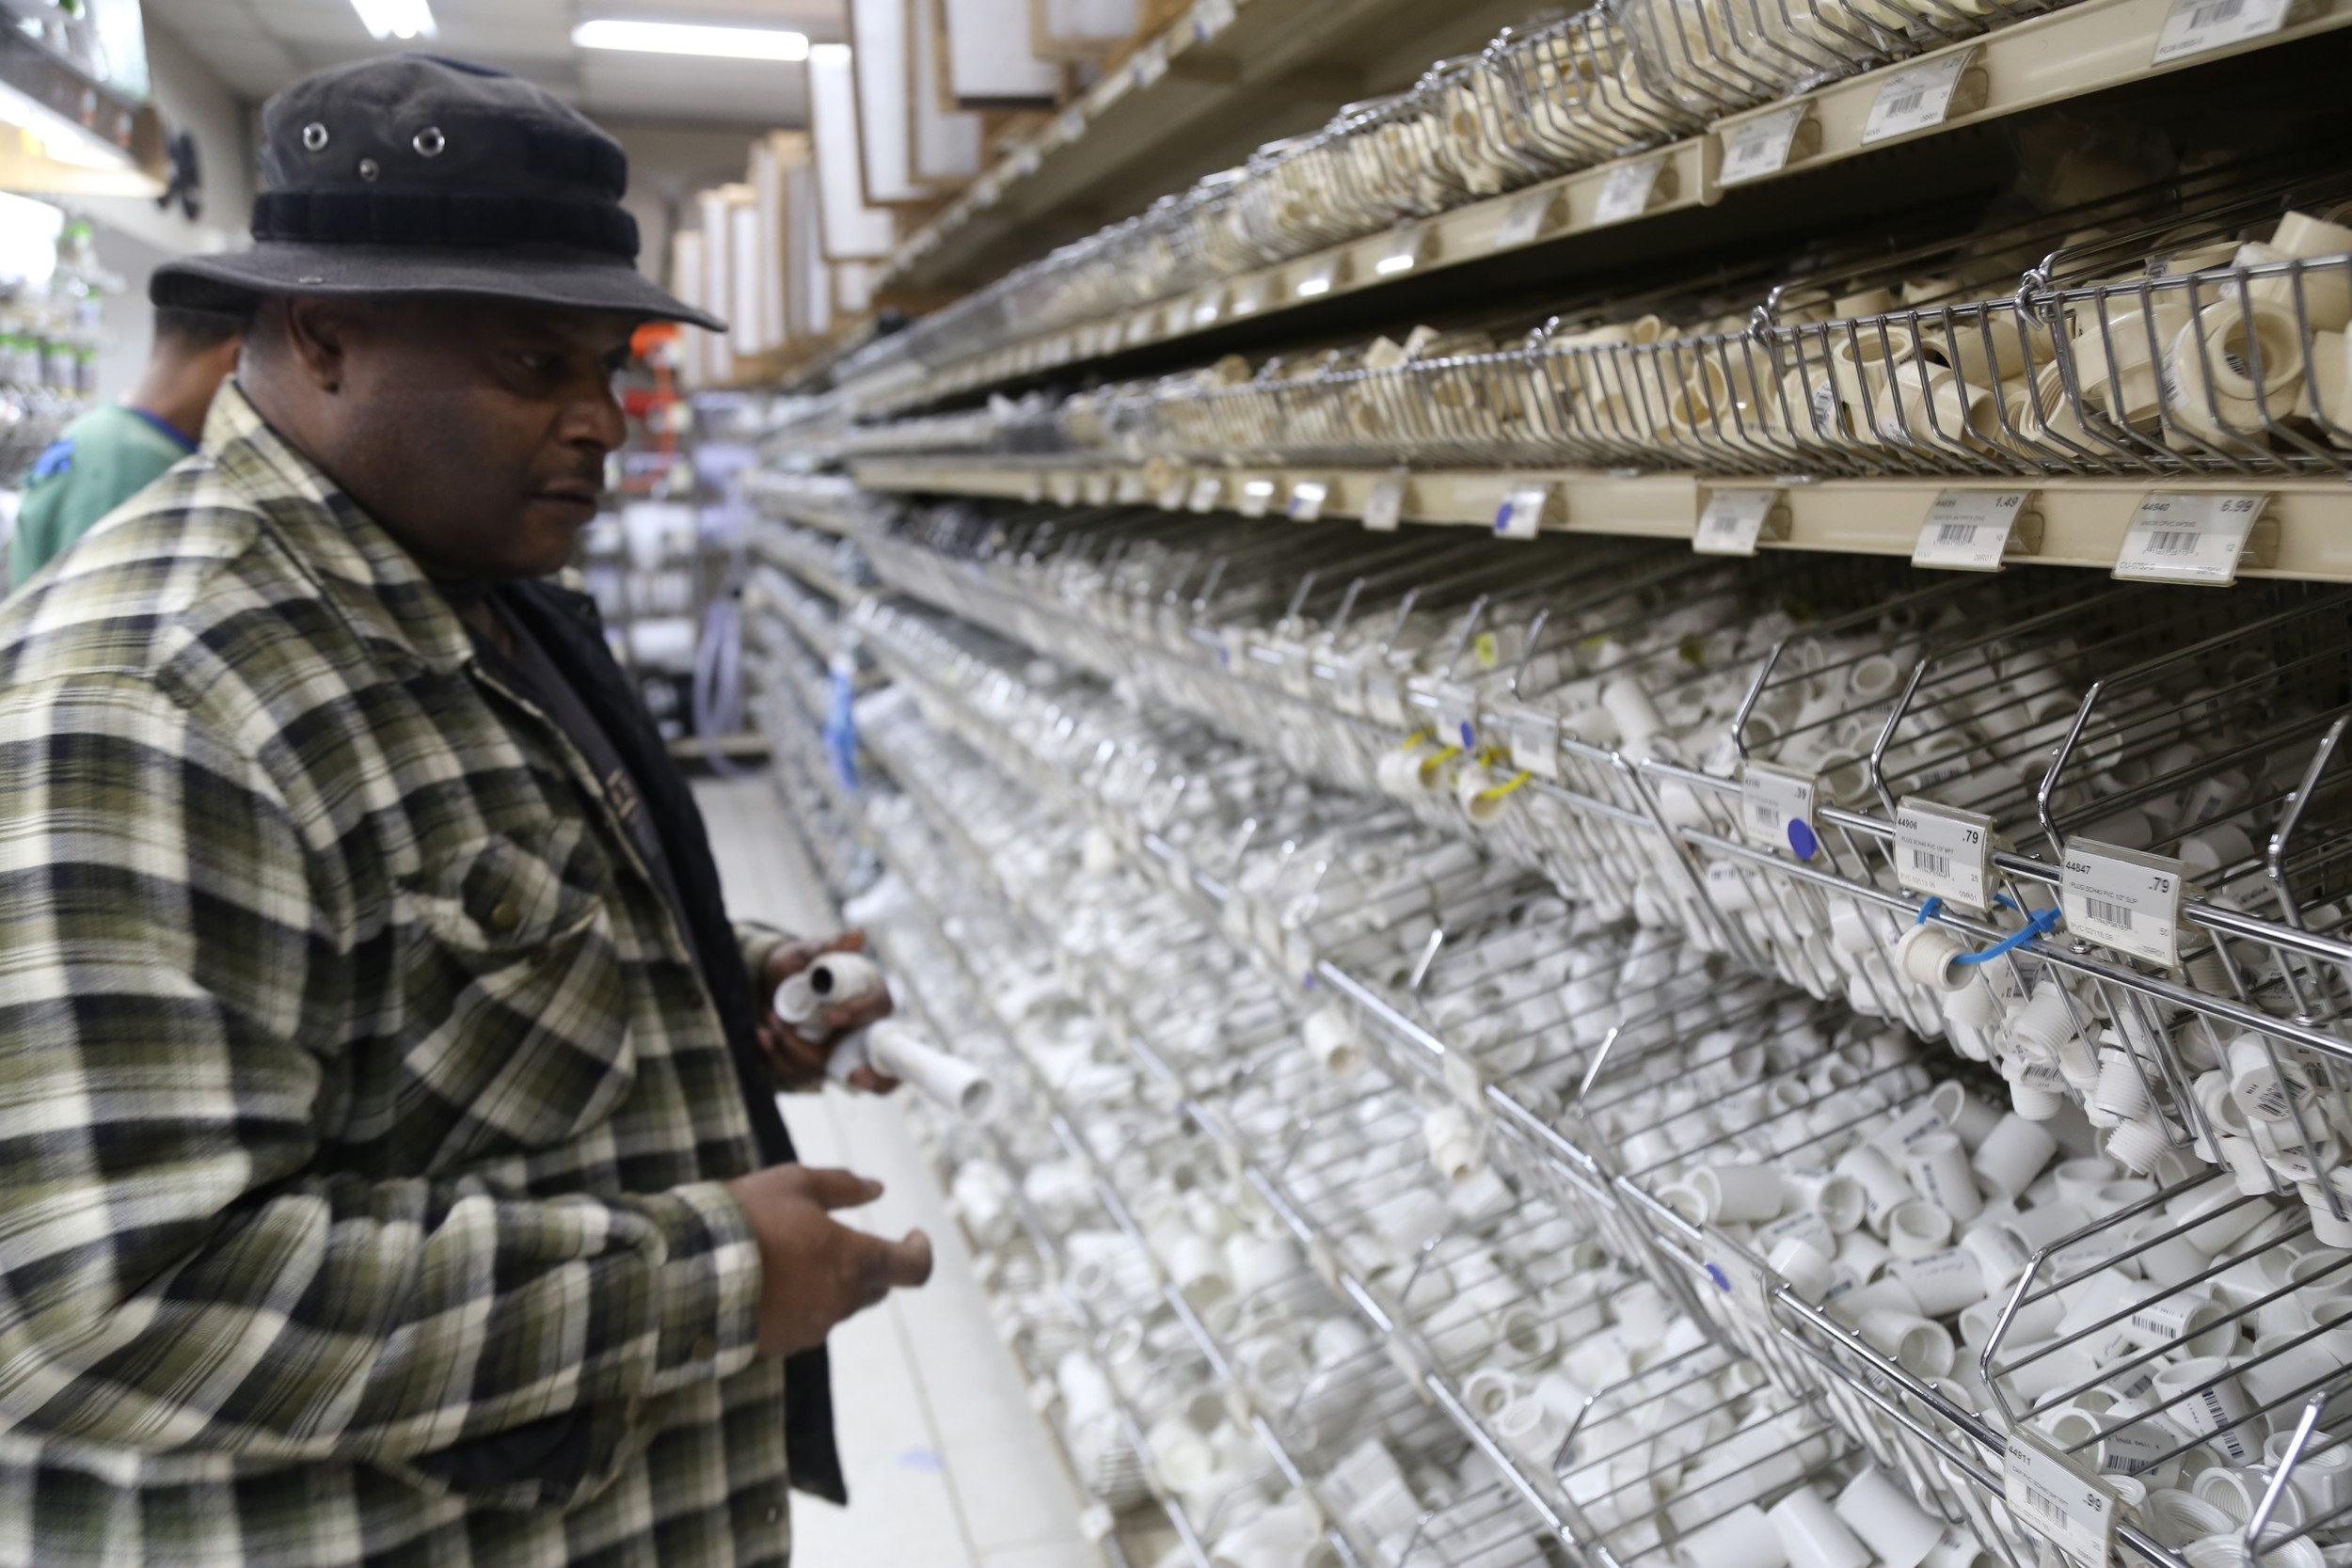 After his pipes burst at home Wednesday night, Sumter resident Freddie Mobley looks at pipe fittings Thursday at Simpson Ace Hardware, 32 W. Liberty St.